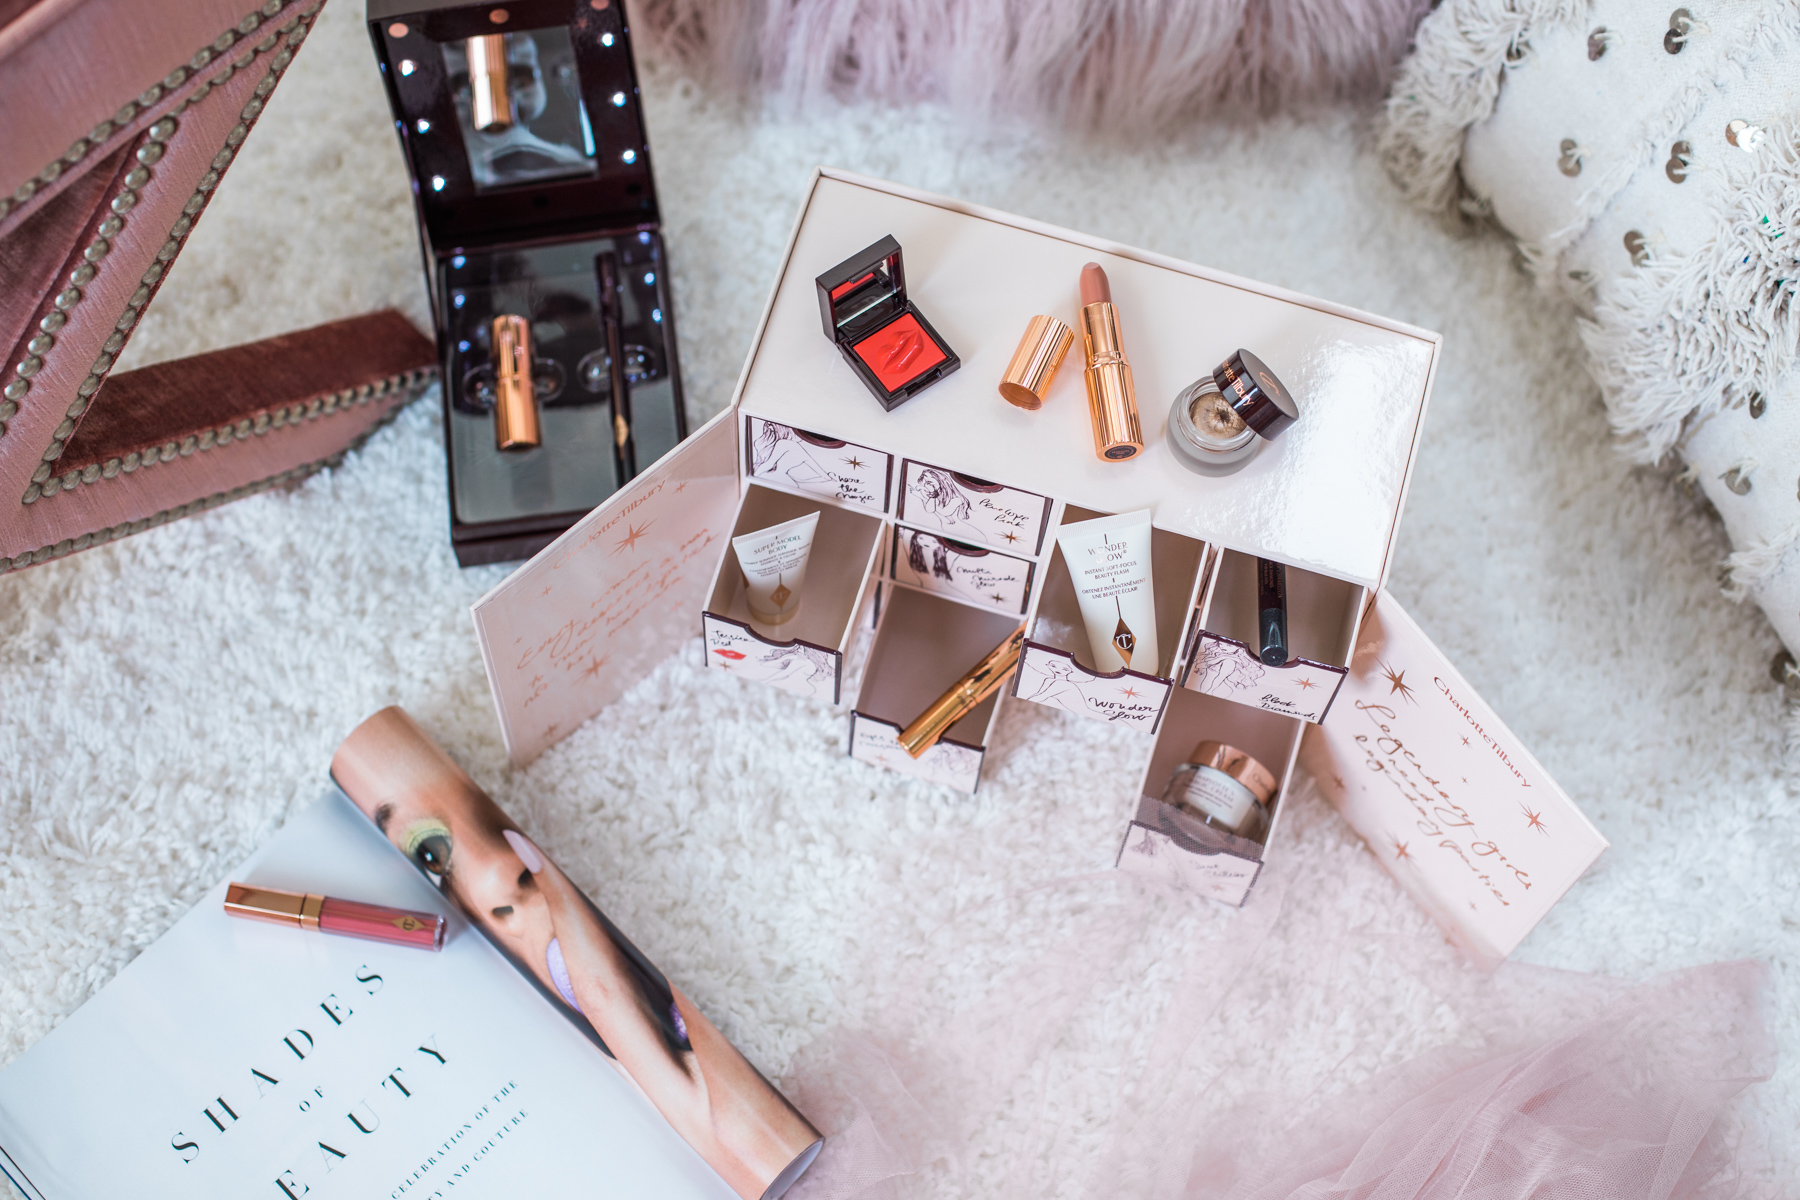 Charlotte Tilbury, Holiday Gift Set, NOTJESSFASHION, NYC, Top Fashion Blogger, Lifestyle Blogger, Travel Blogger